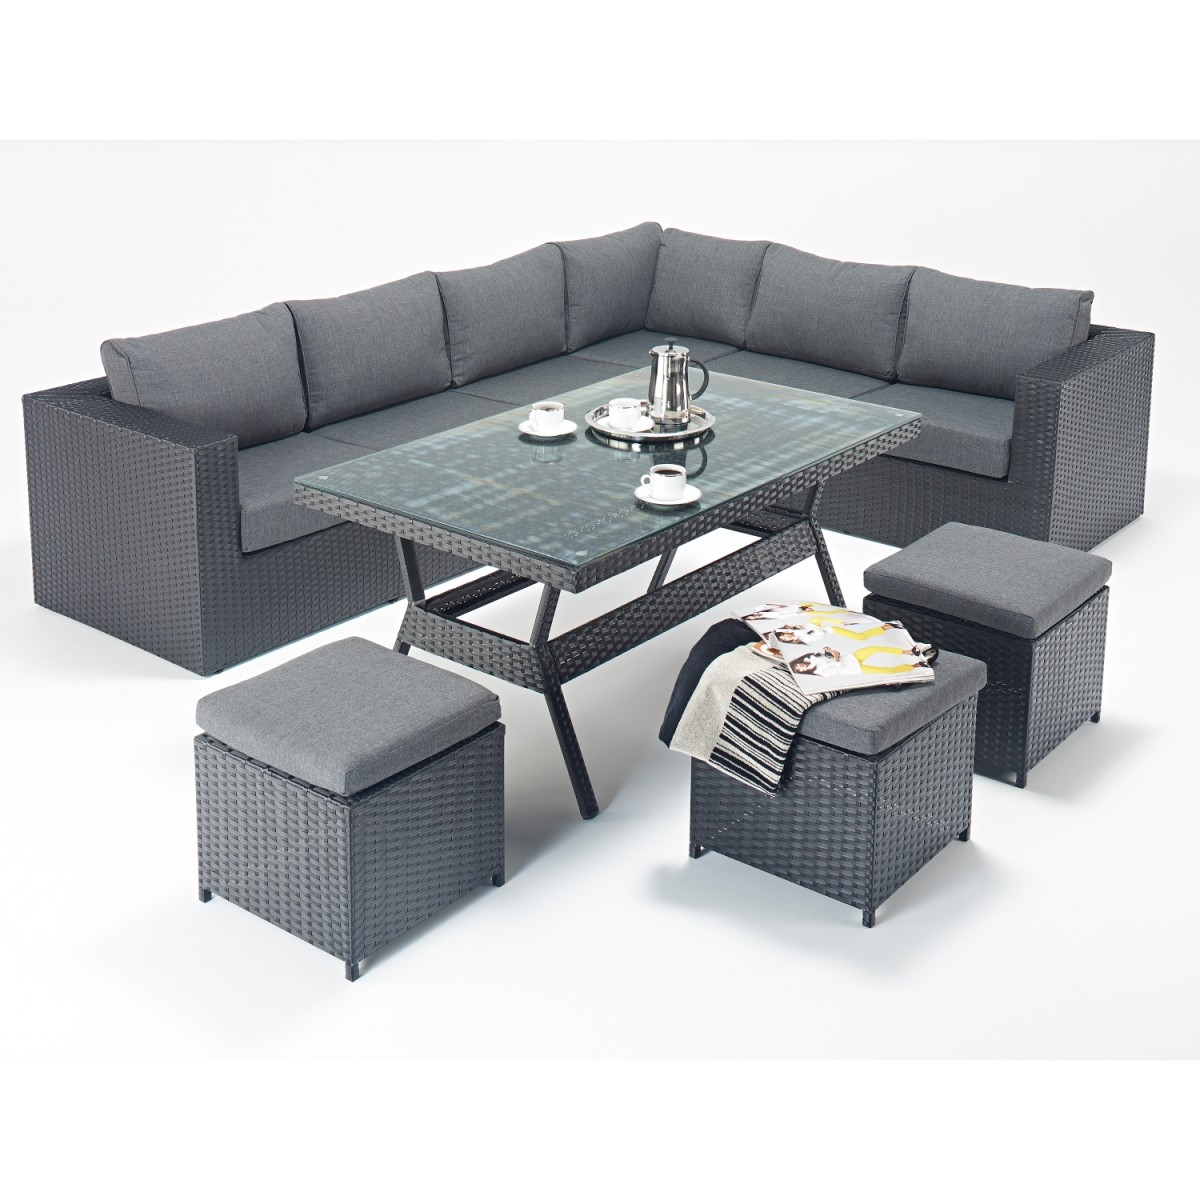 rattan set prestige corner sofa dining set wgf 313 right. Black Bedroom Furniture Sets. Home Design Ideas